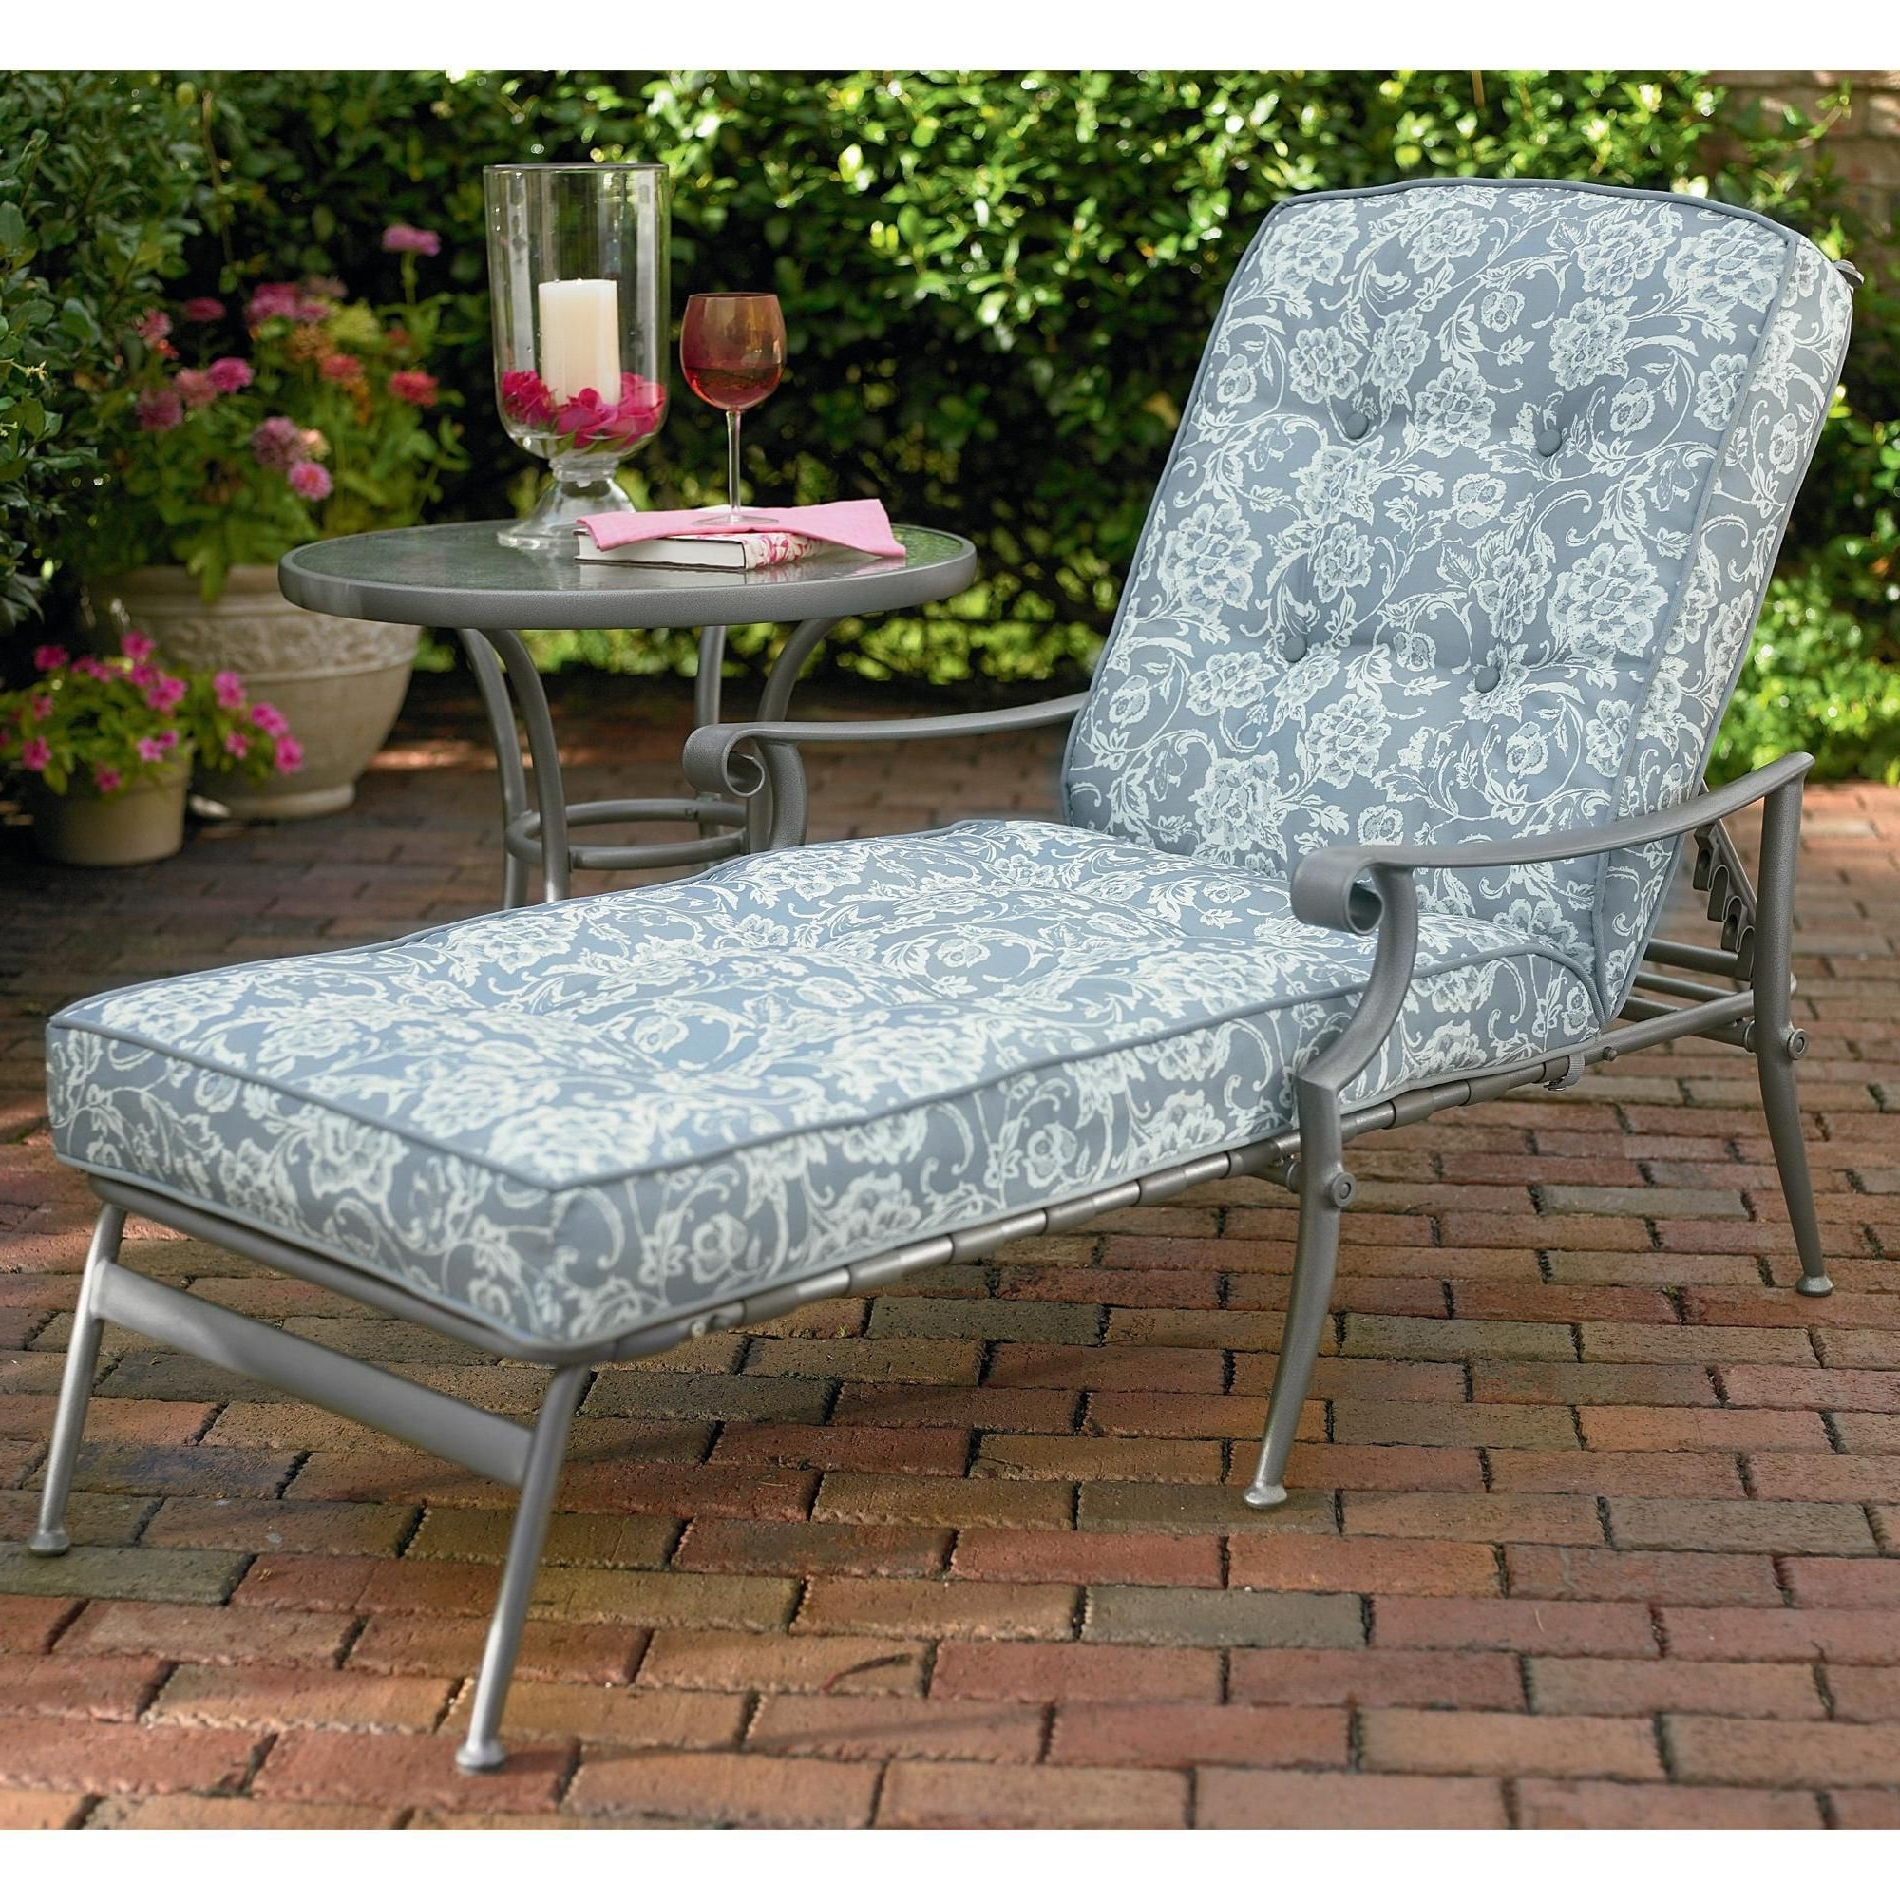 Most Current Chaise Lounge Chair Outdoor Cushions Throughout Convertible Chair : Lounge Chairs Aluminum Chaise Lounge Chairs (View 9 of 15)